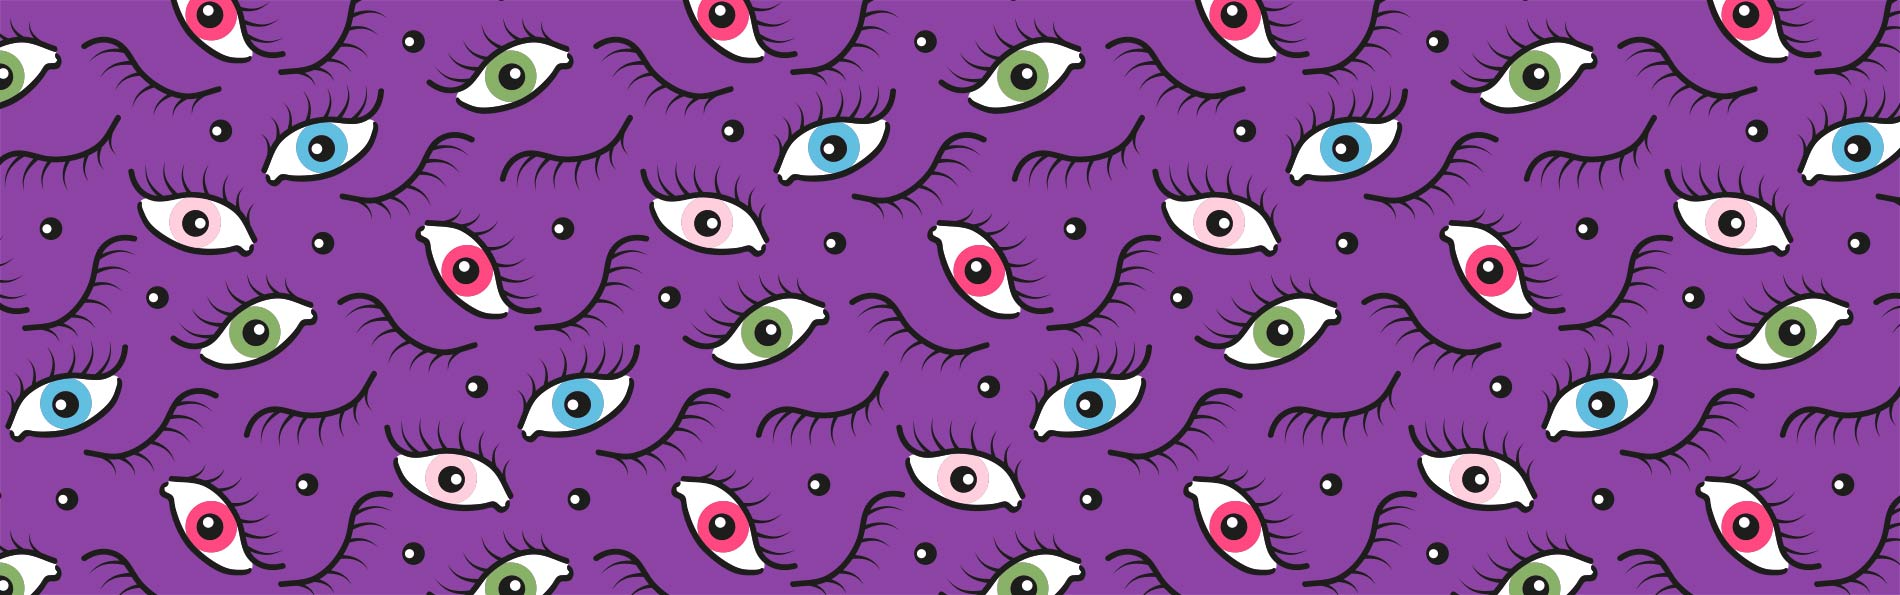 repeat pattern of illustrated eyes open and closed